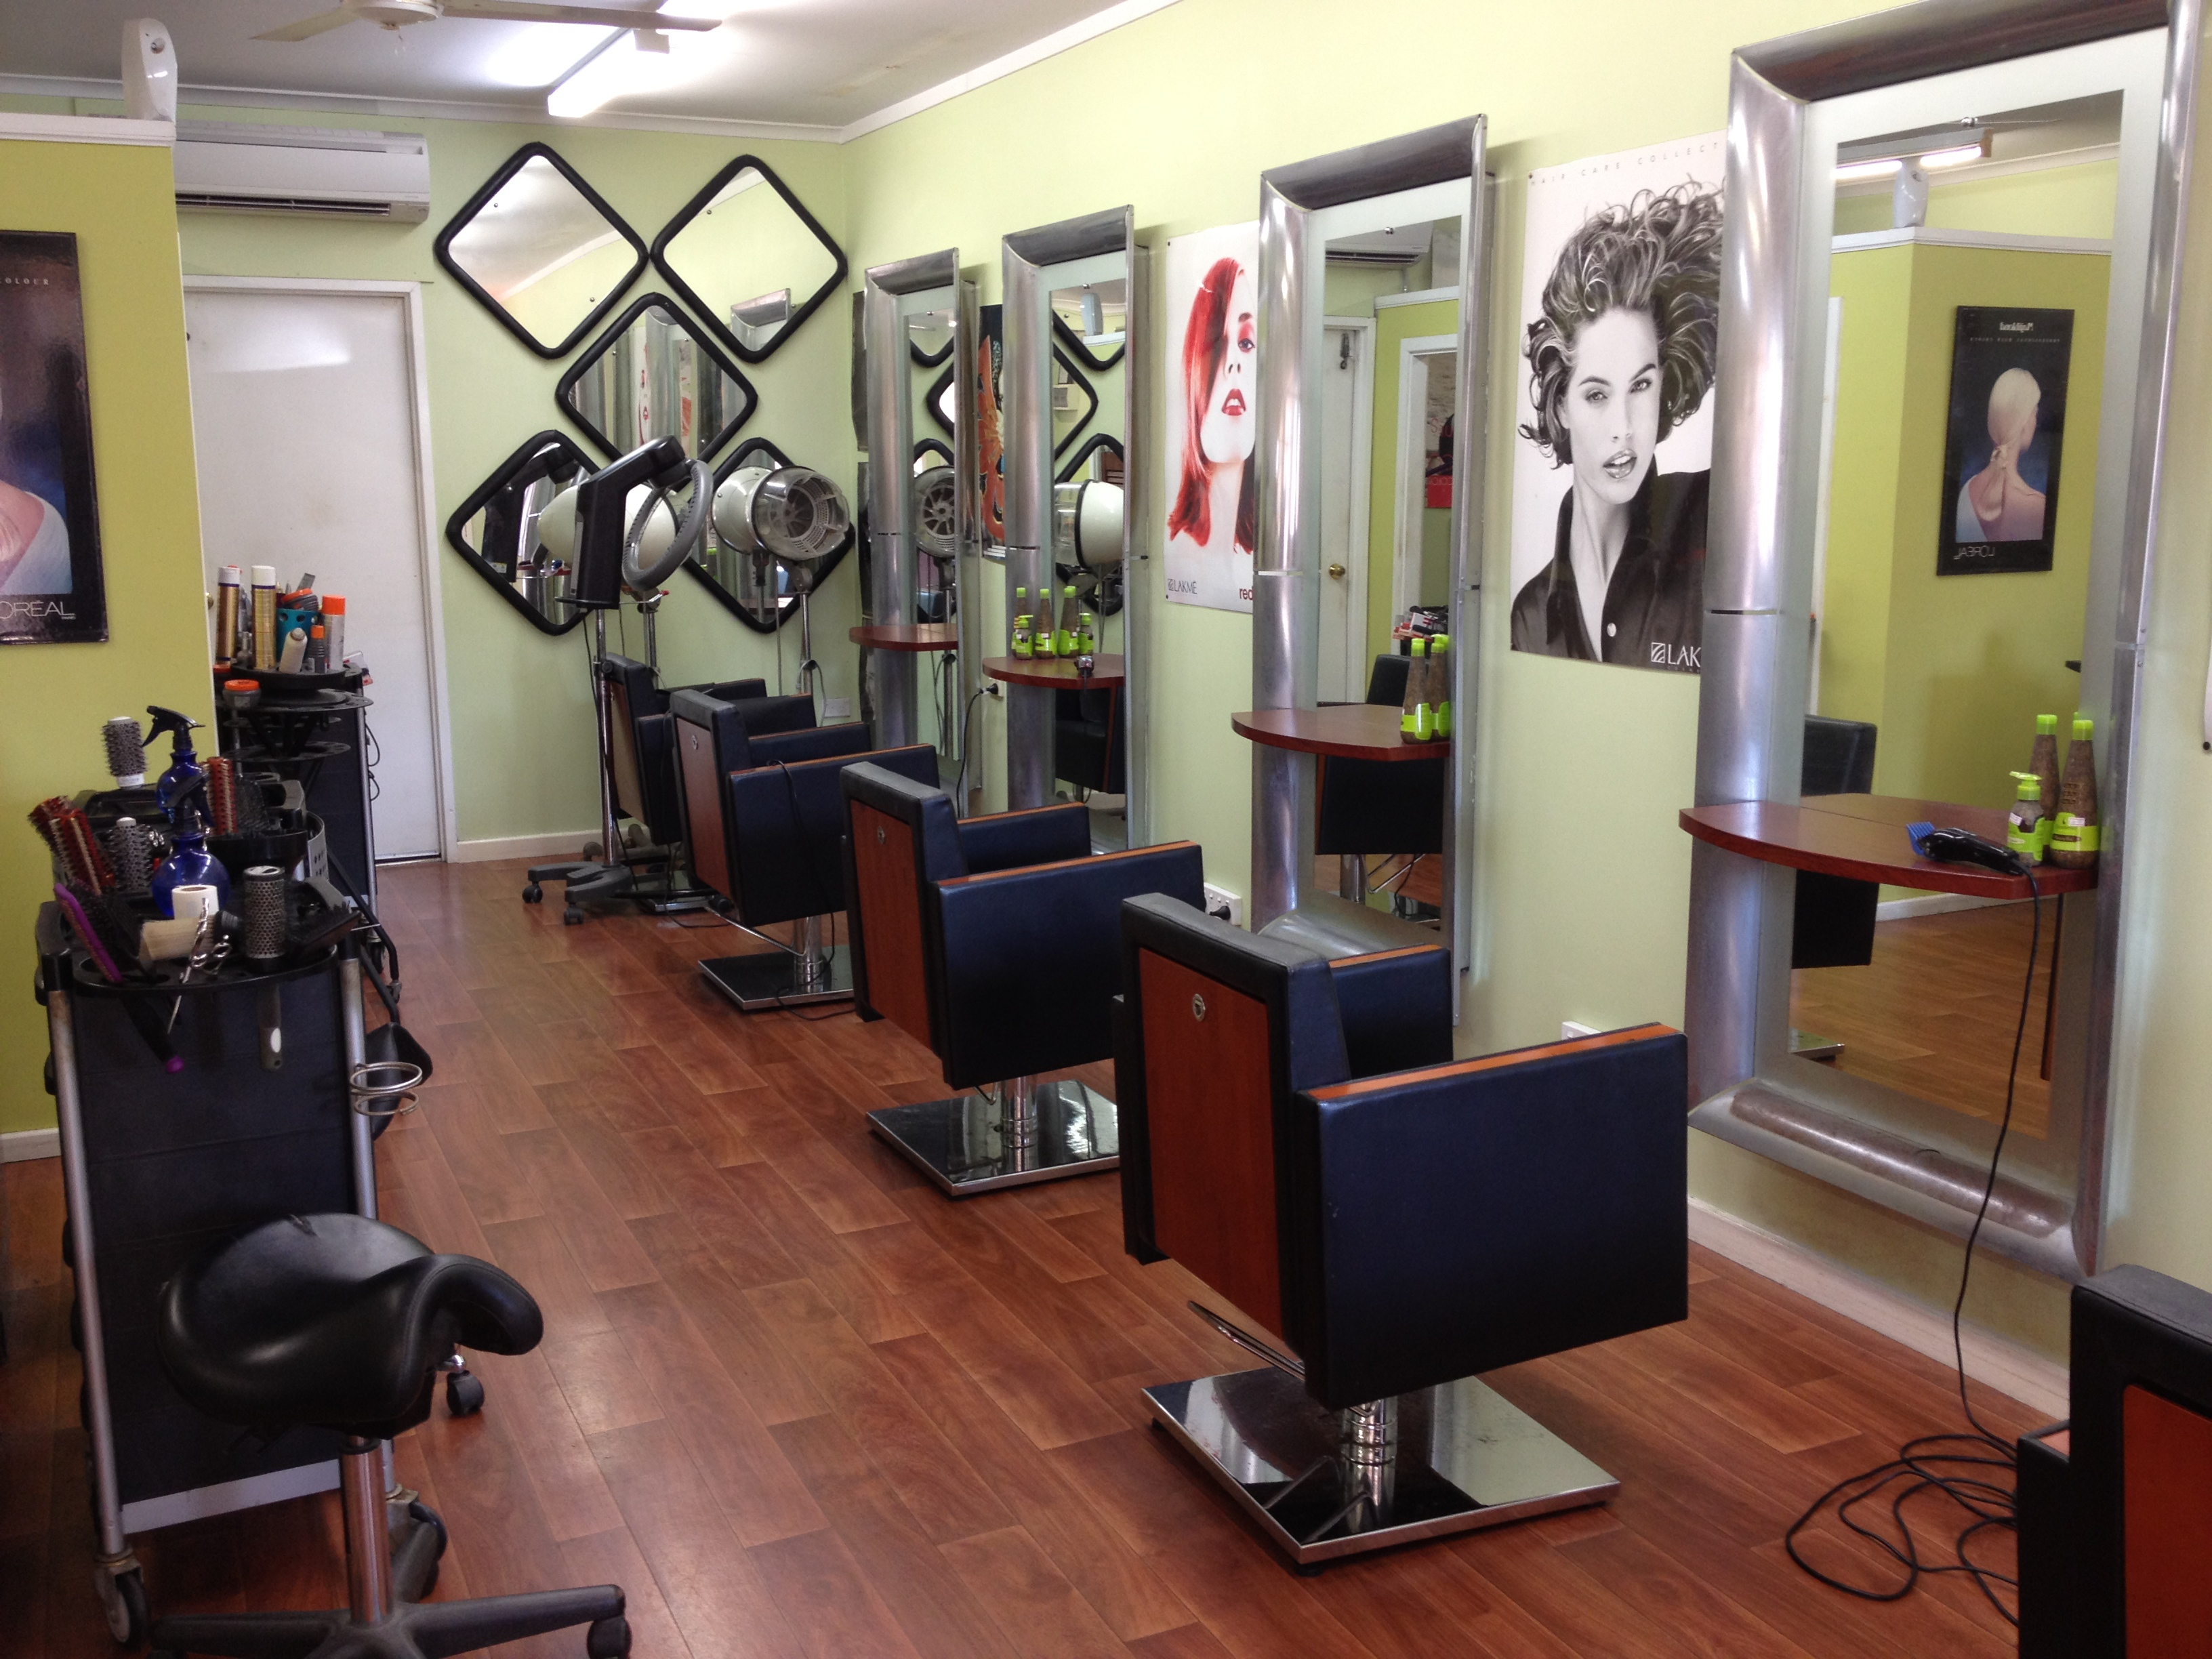 Hair salon broome 08 9192 1432 shaggah 39 s hair studio for A beautiful you salon